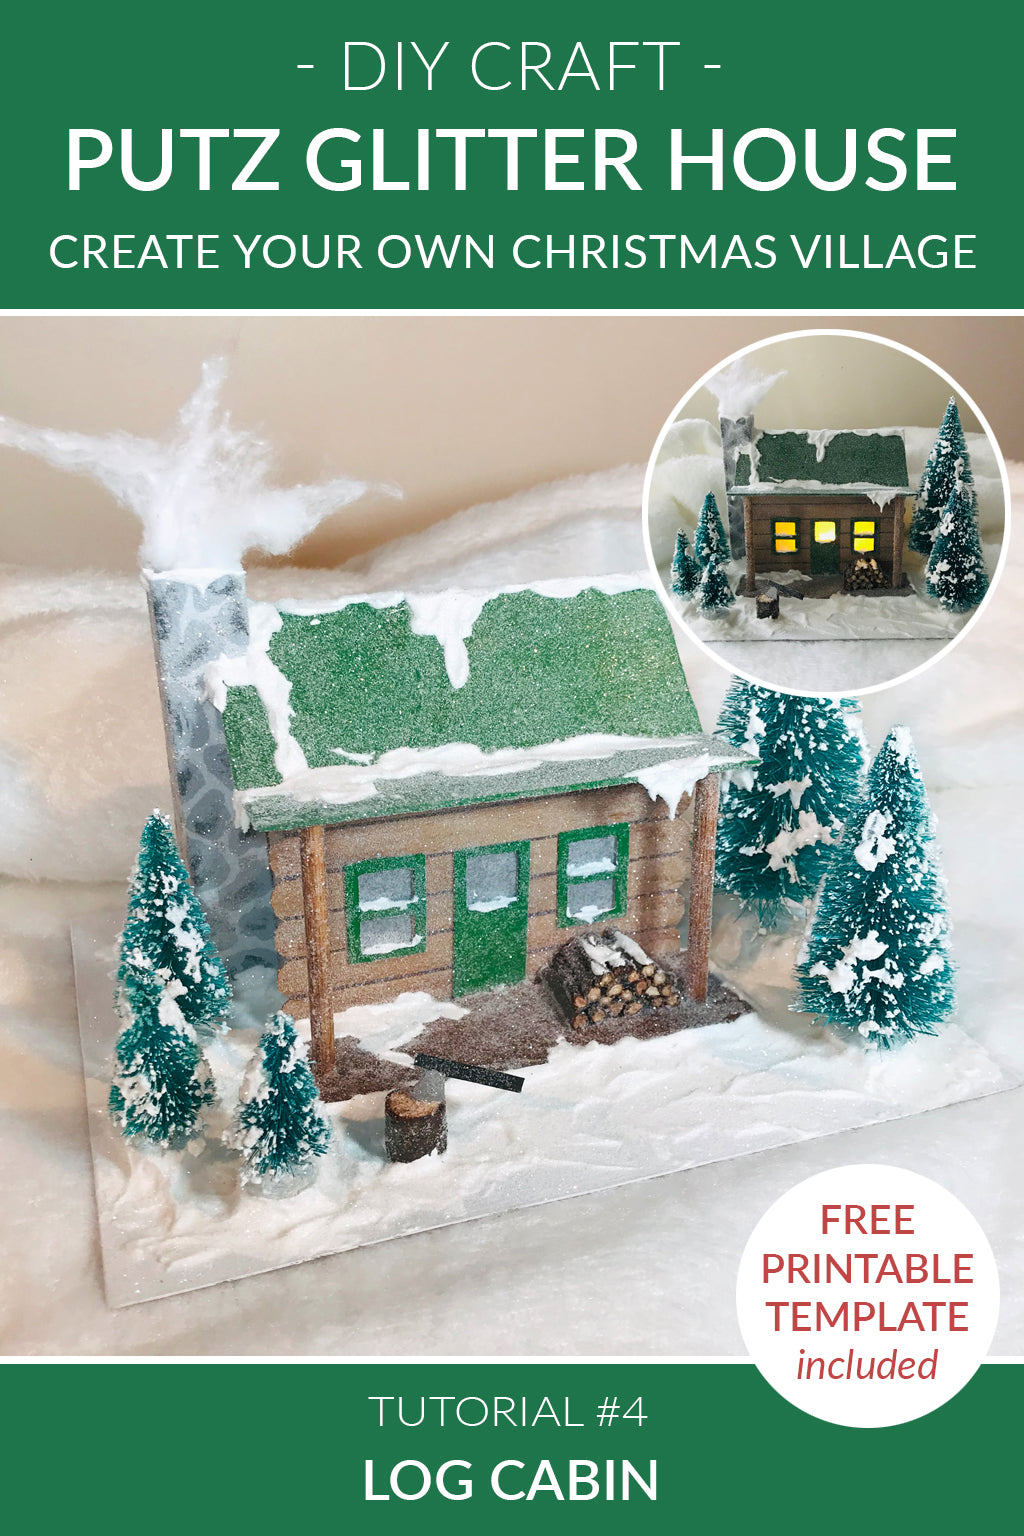 DIY Craft Tutorial 4 - Cardboard Christmas Village Putz Glitter House - Log Cabin - Montage